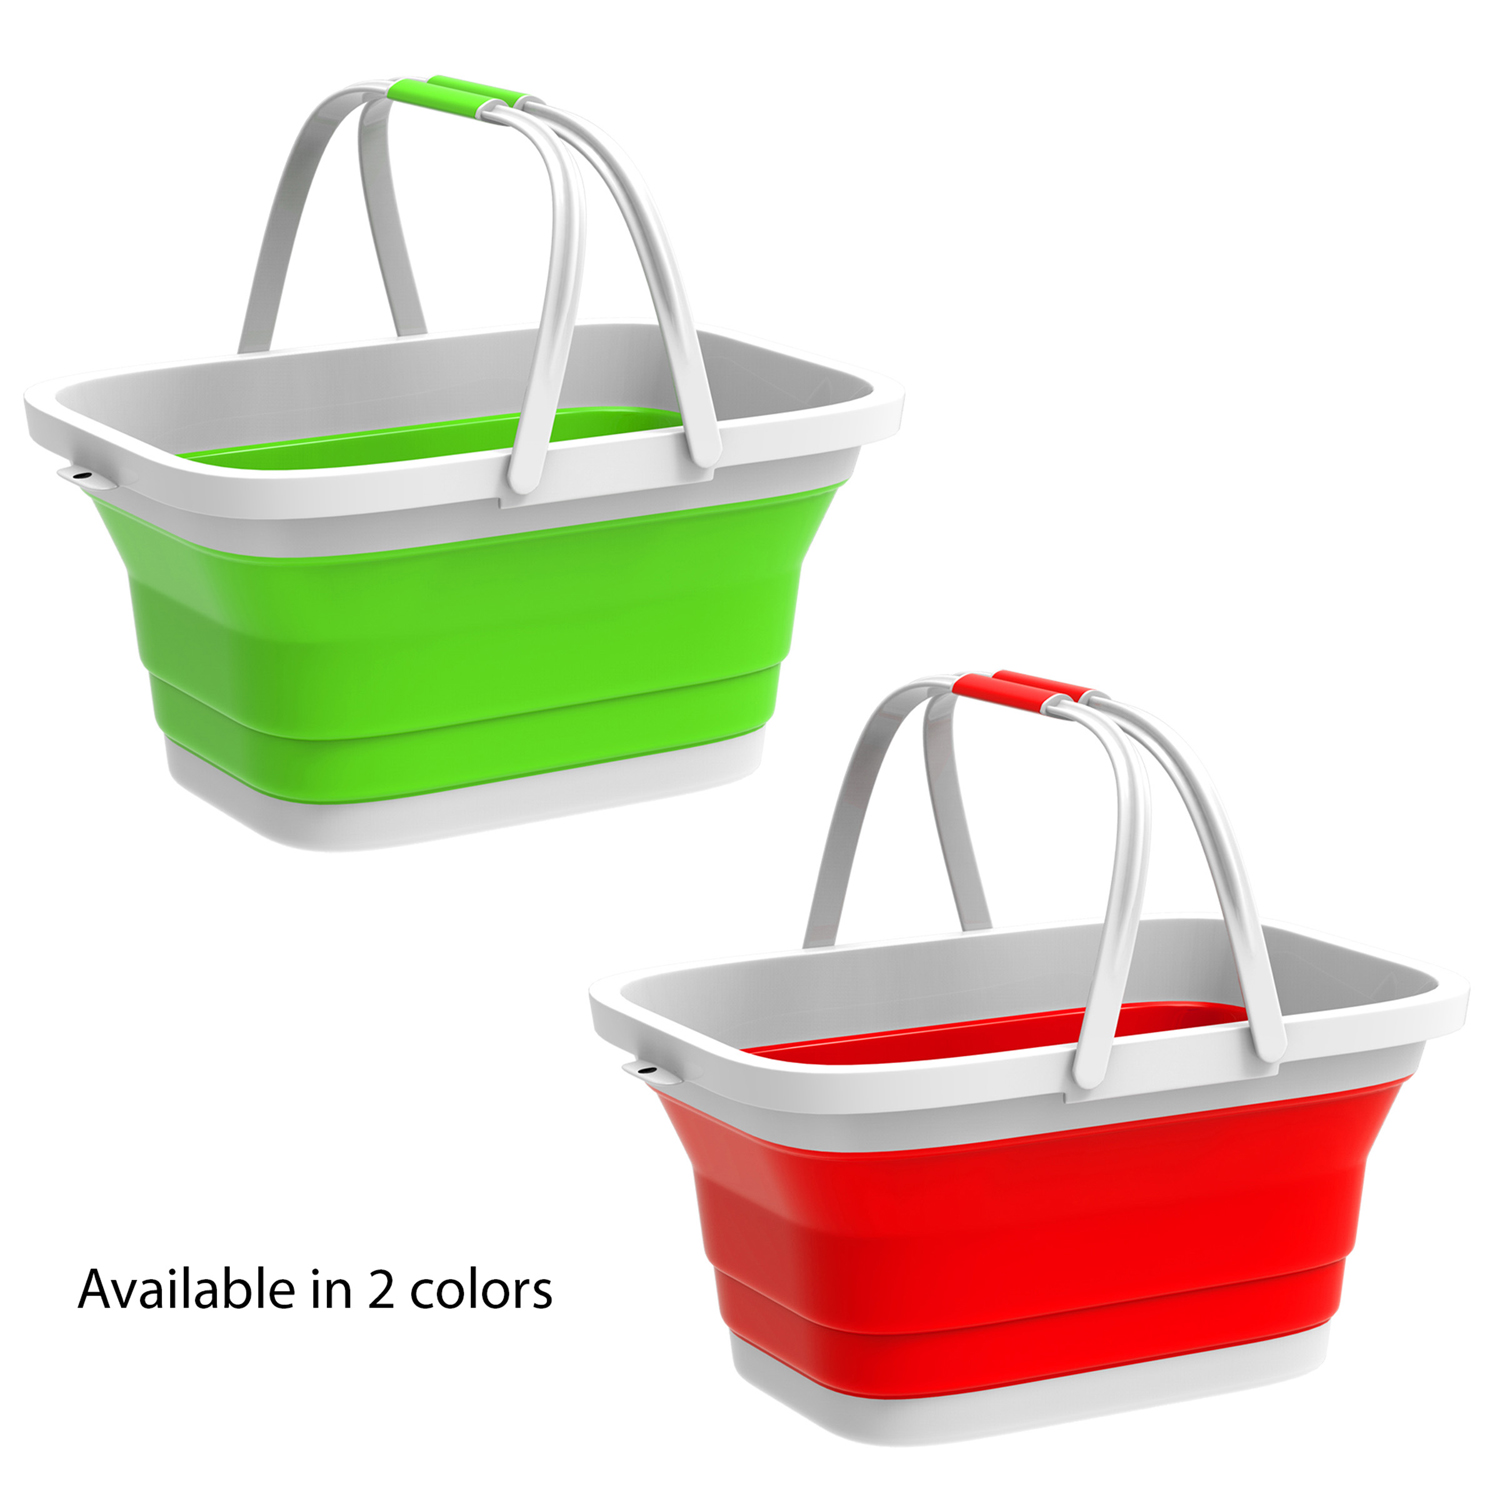 Green Collapsible Basket with Handles